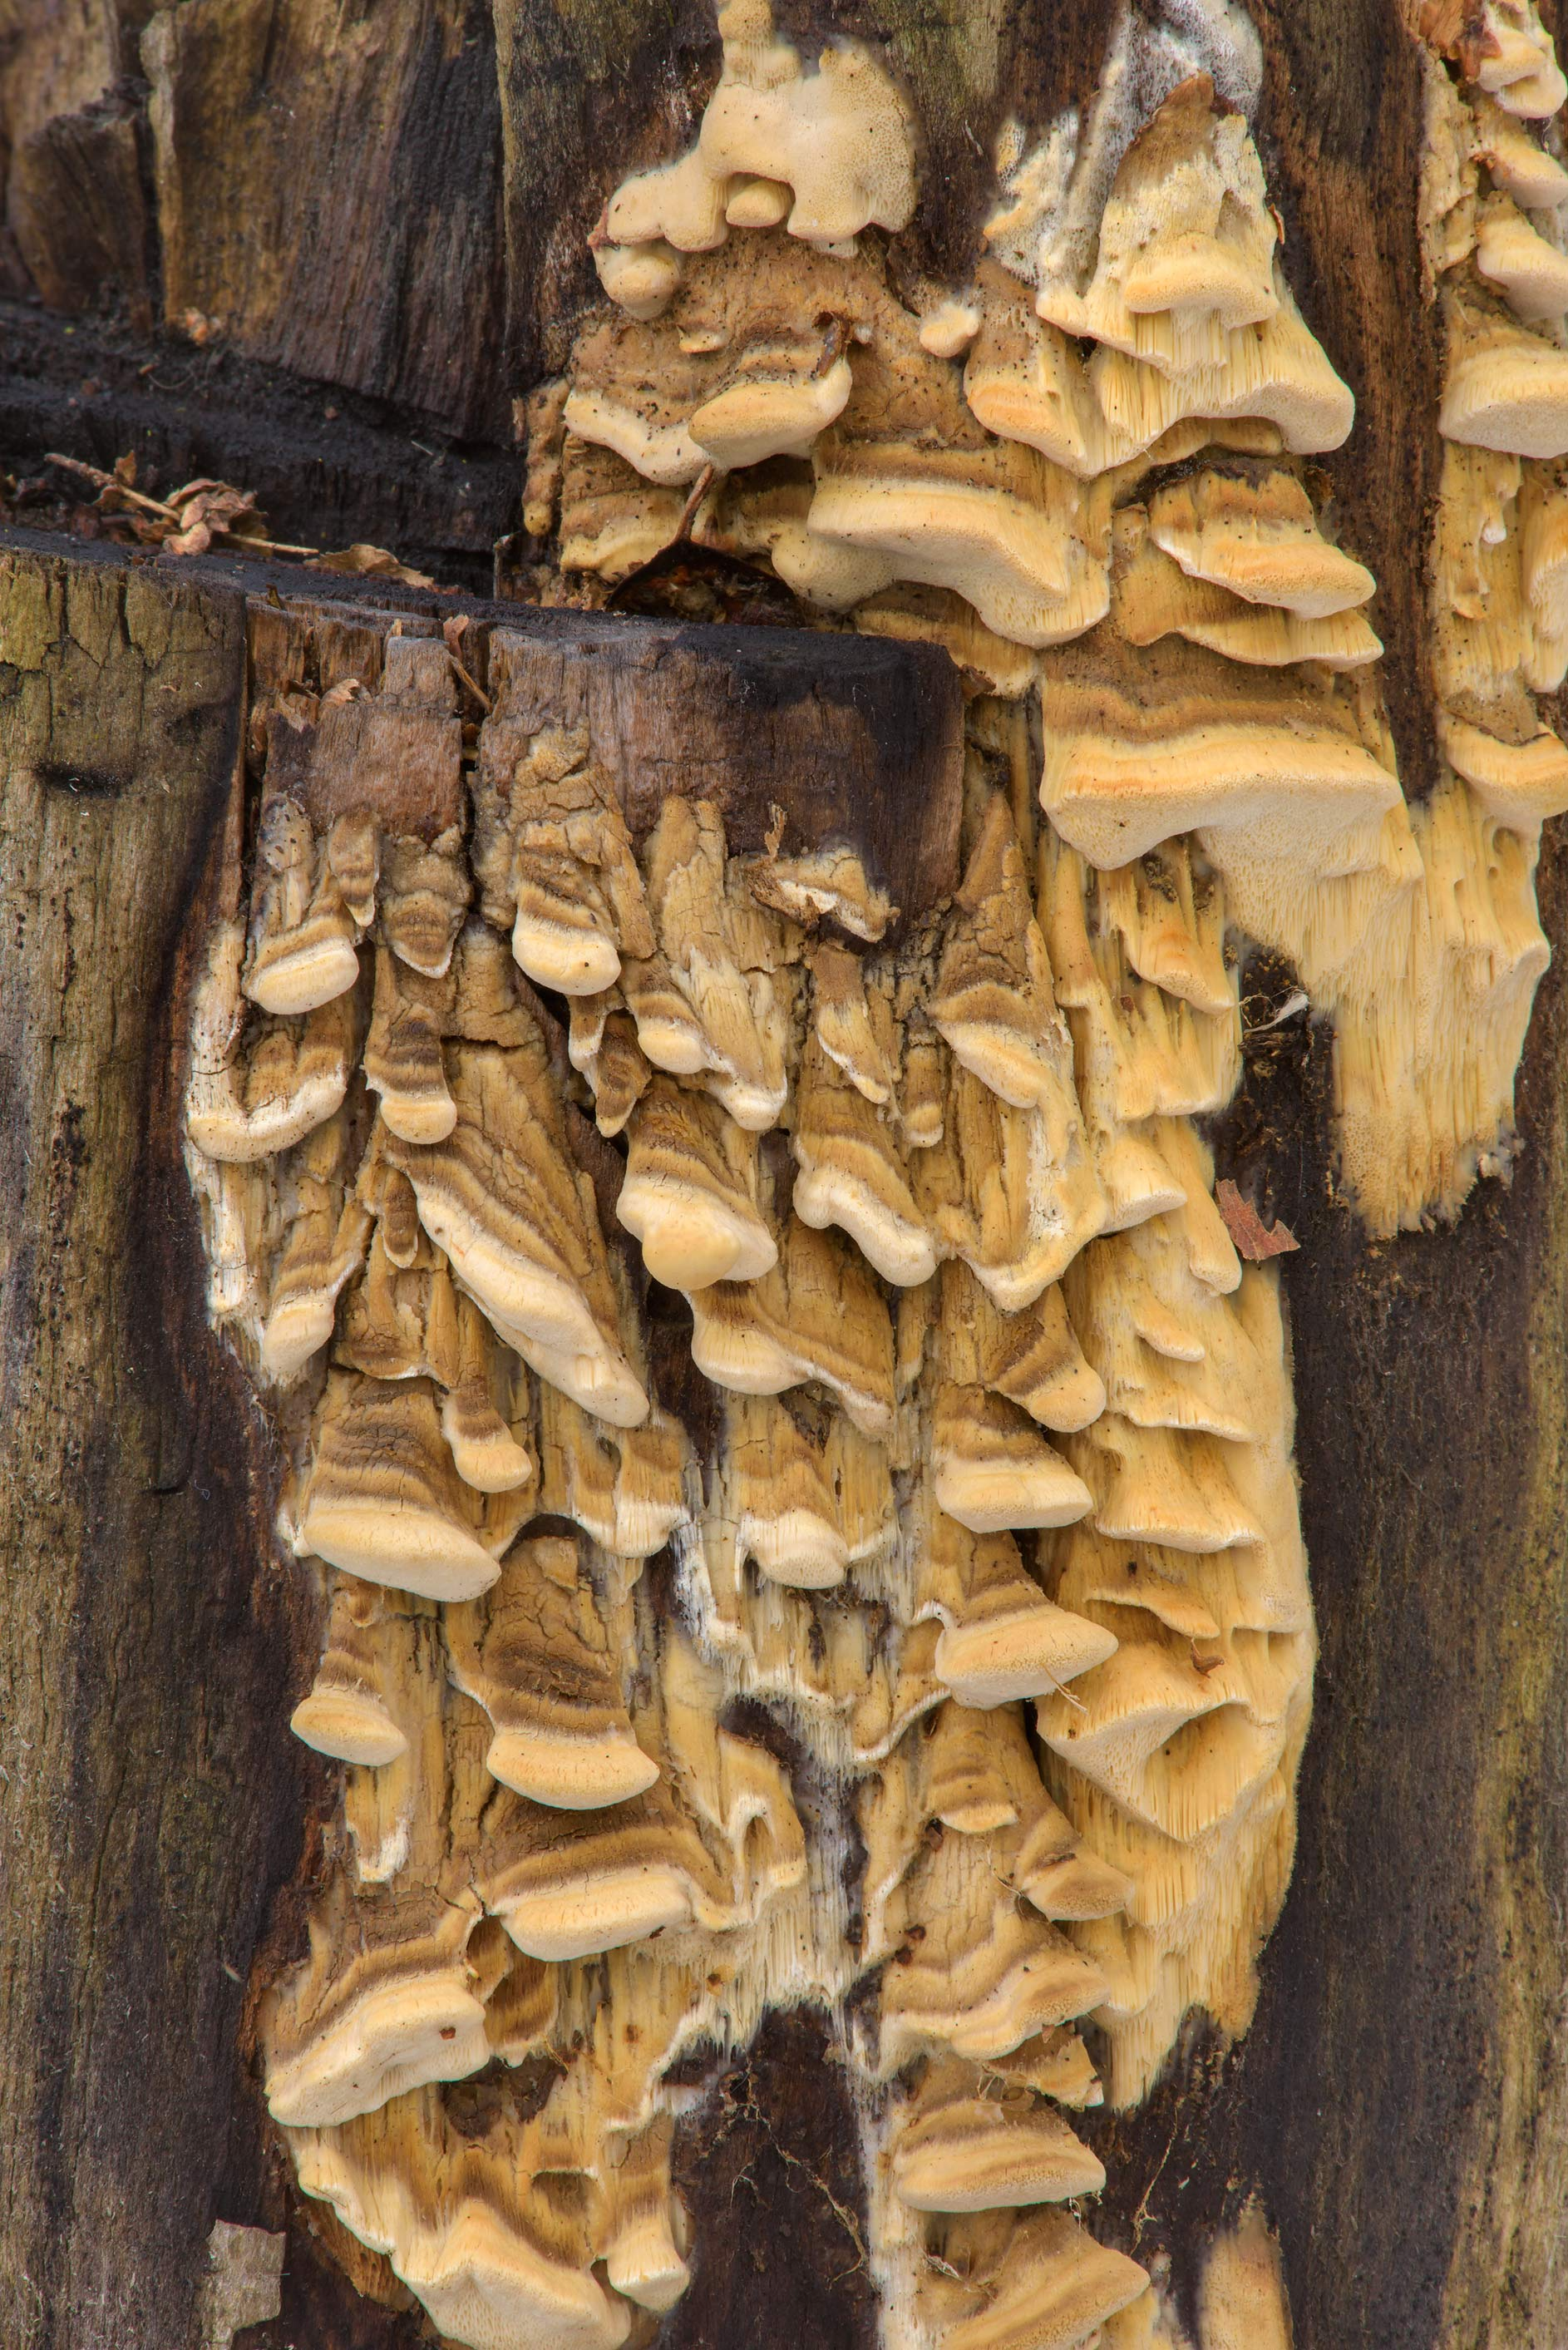 Stalactite structure (pseudopilei) of a tinder...Park. St.Petersburg, Russia